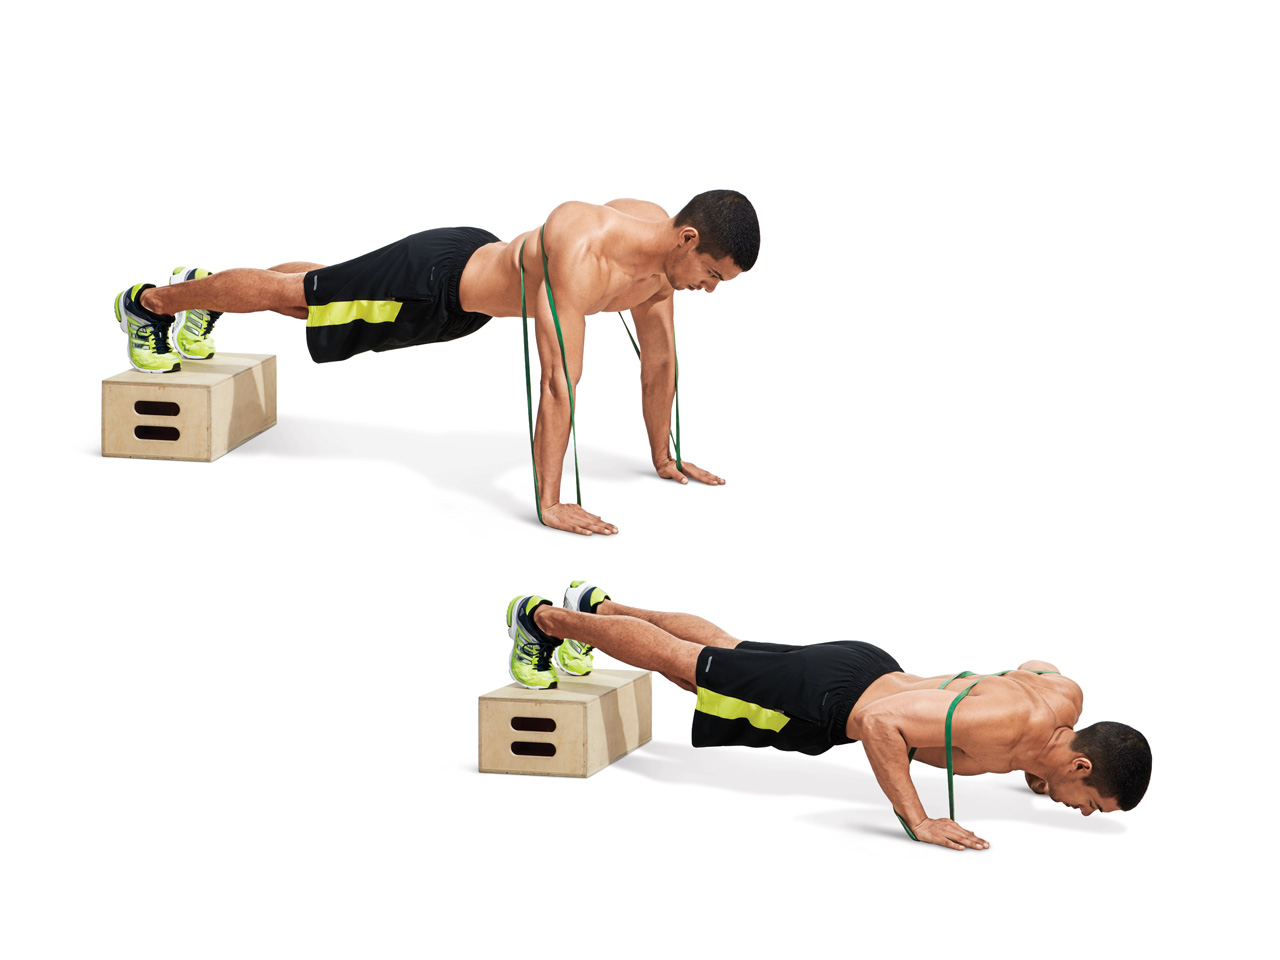 Band-Resisted Pushup W/ Feet Elevated | Muscle & Fitness